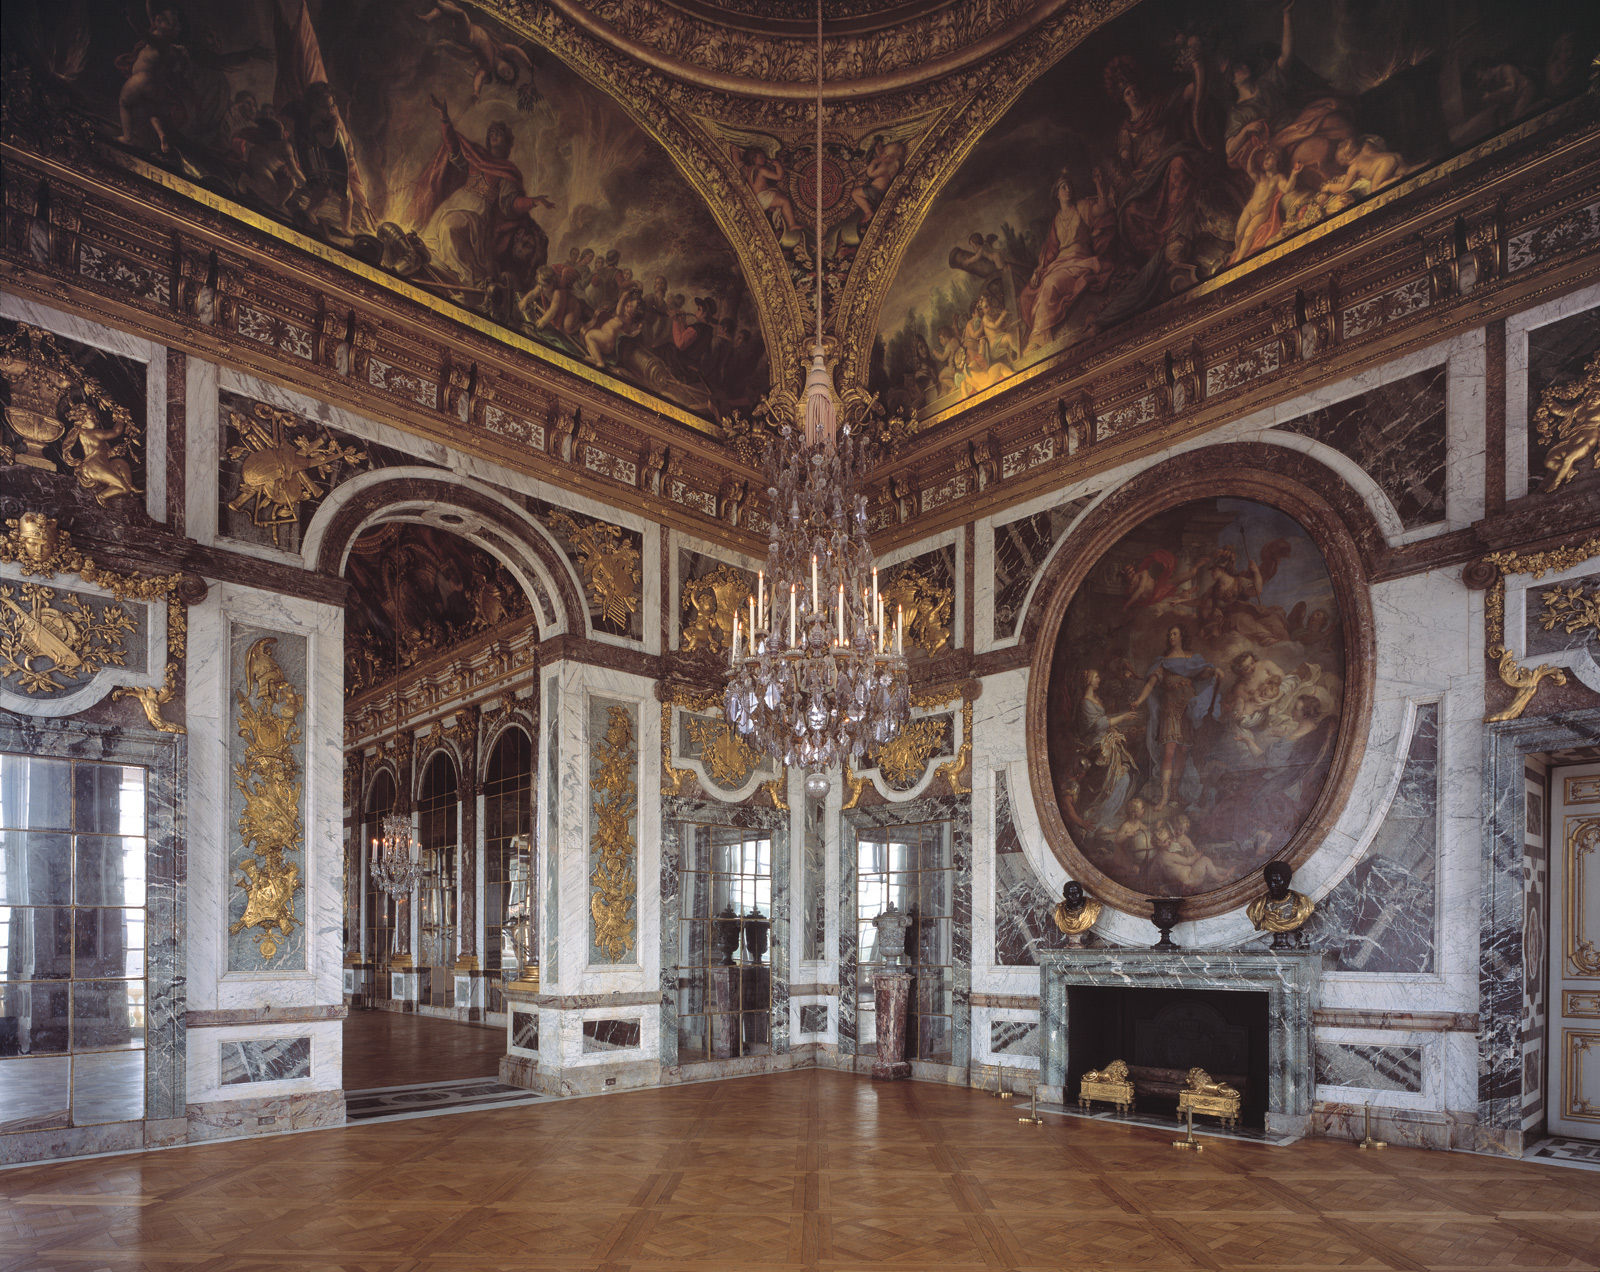 Ch teau de versailles salon de la paix reinhard g rner for Salon de la photo